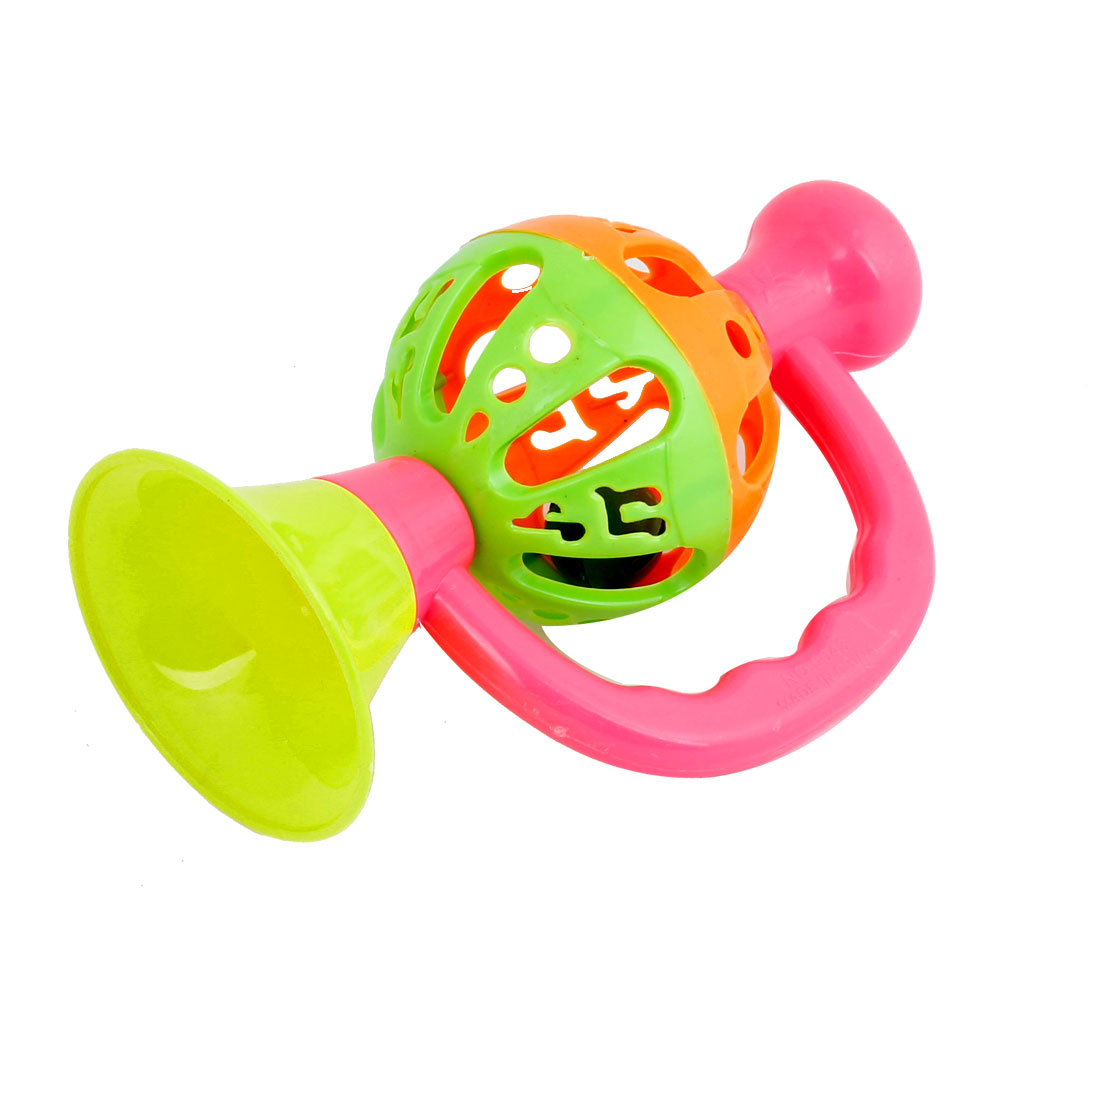 Toddler Jingle Bell Shaker Plastic Trumpet Shaped Toy Pink Yellow